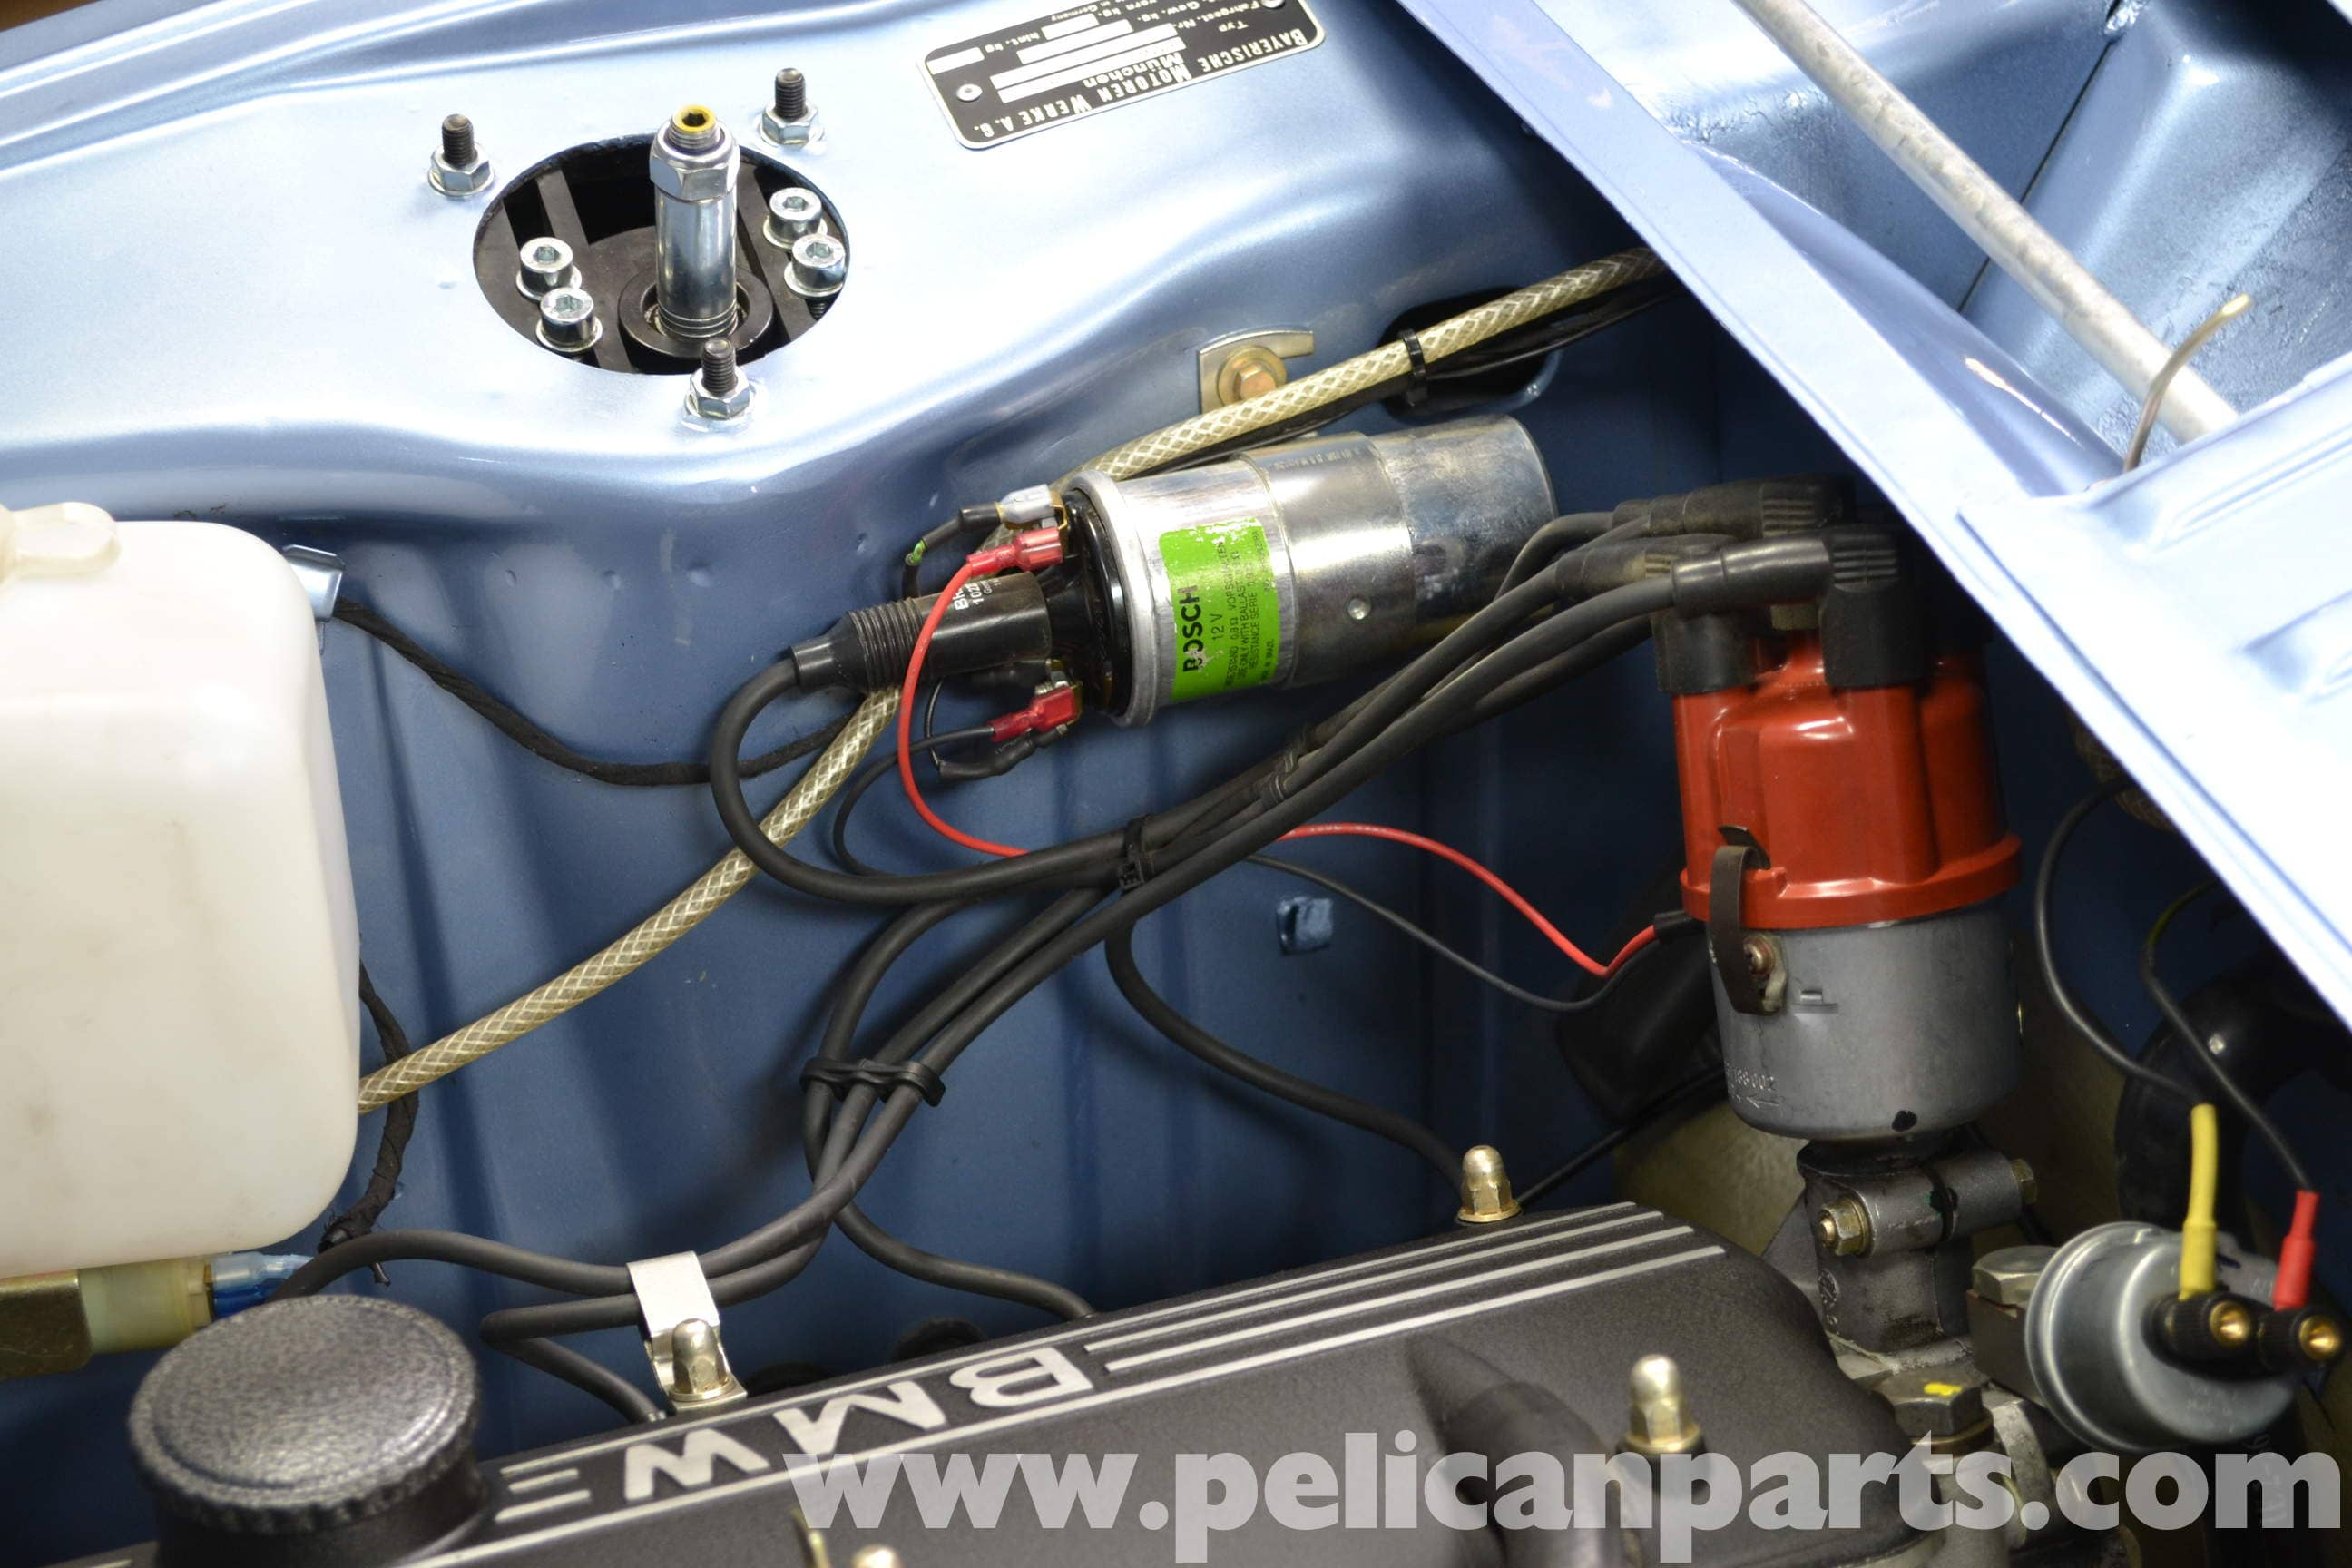 Bmw 2002 Coil Testing And Replacement 1966 1976 Pelican Parts Diy Maintenance Article